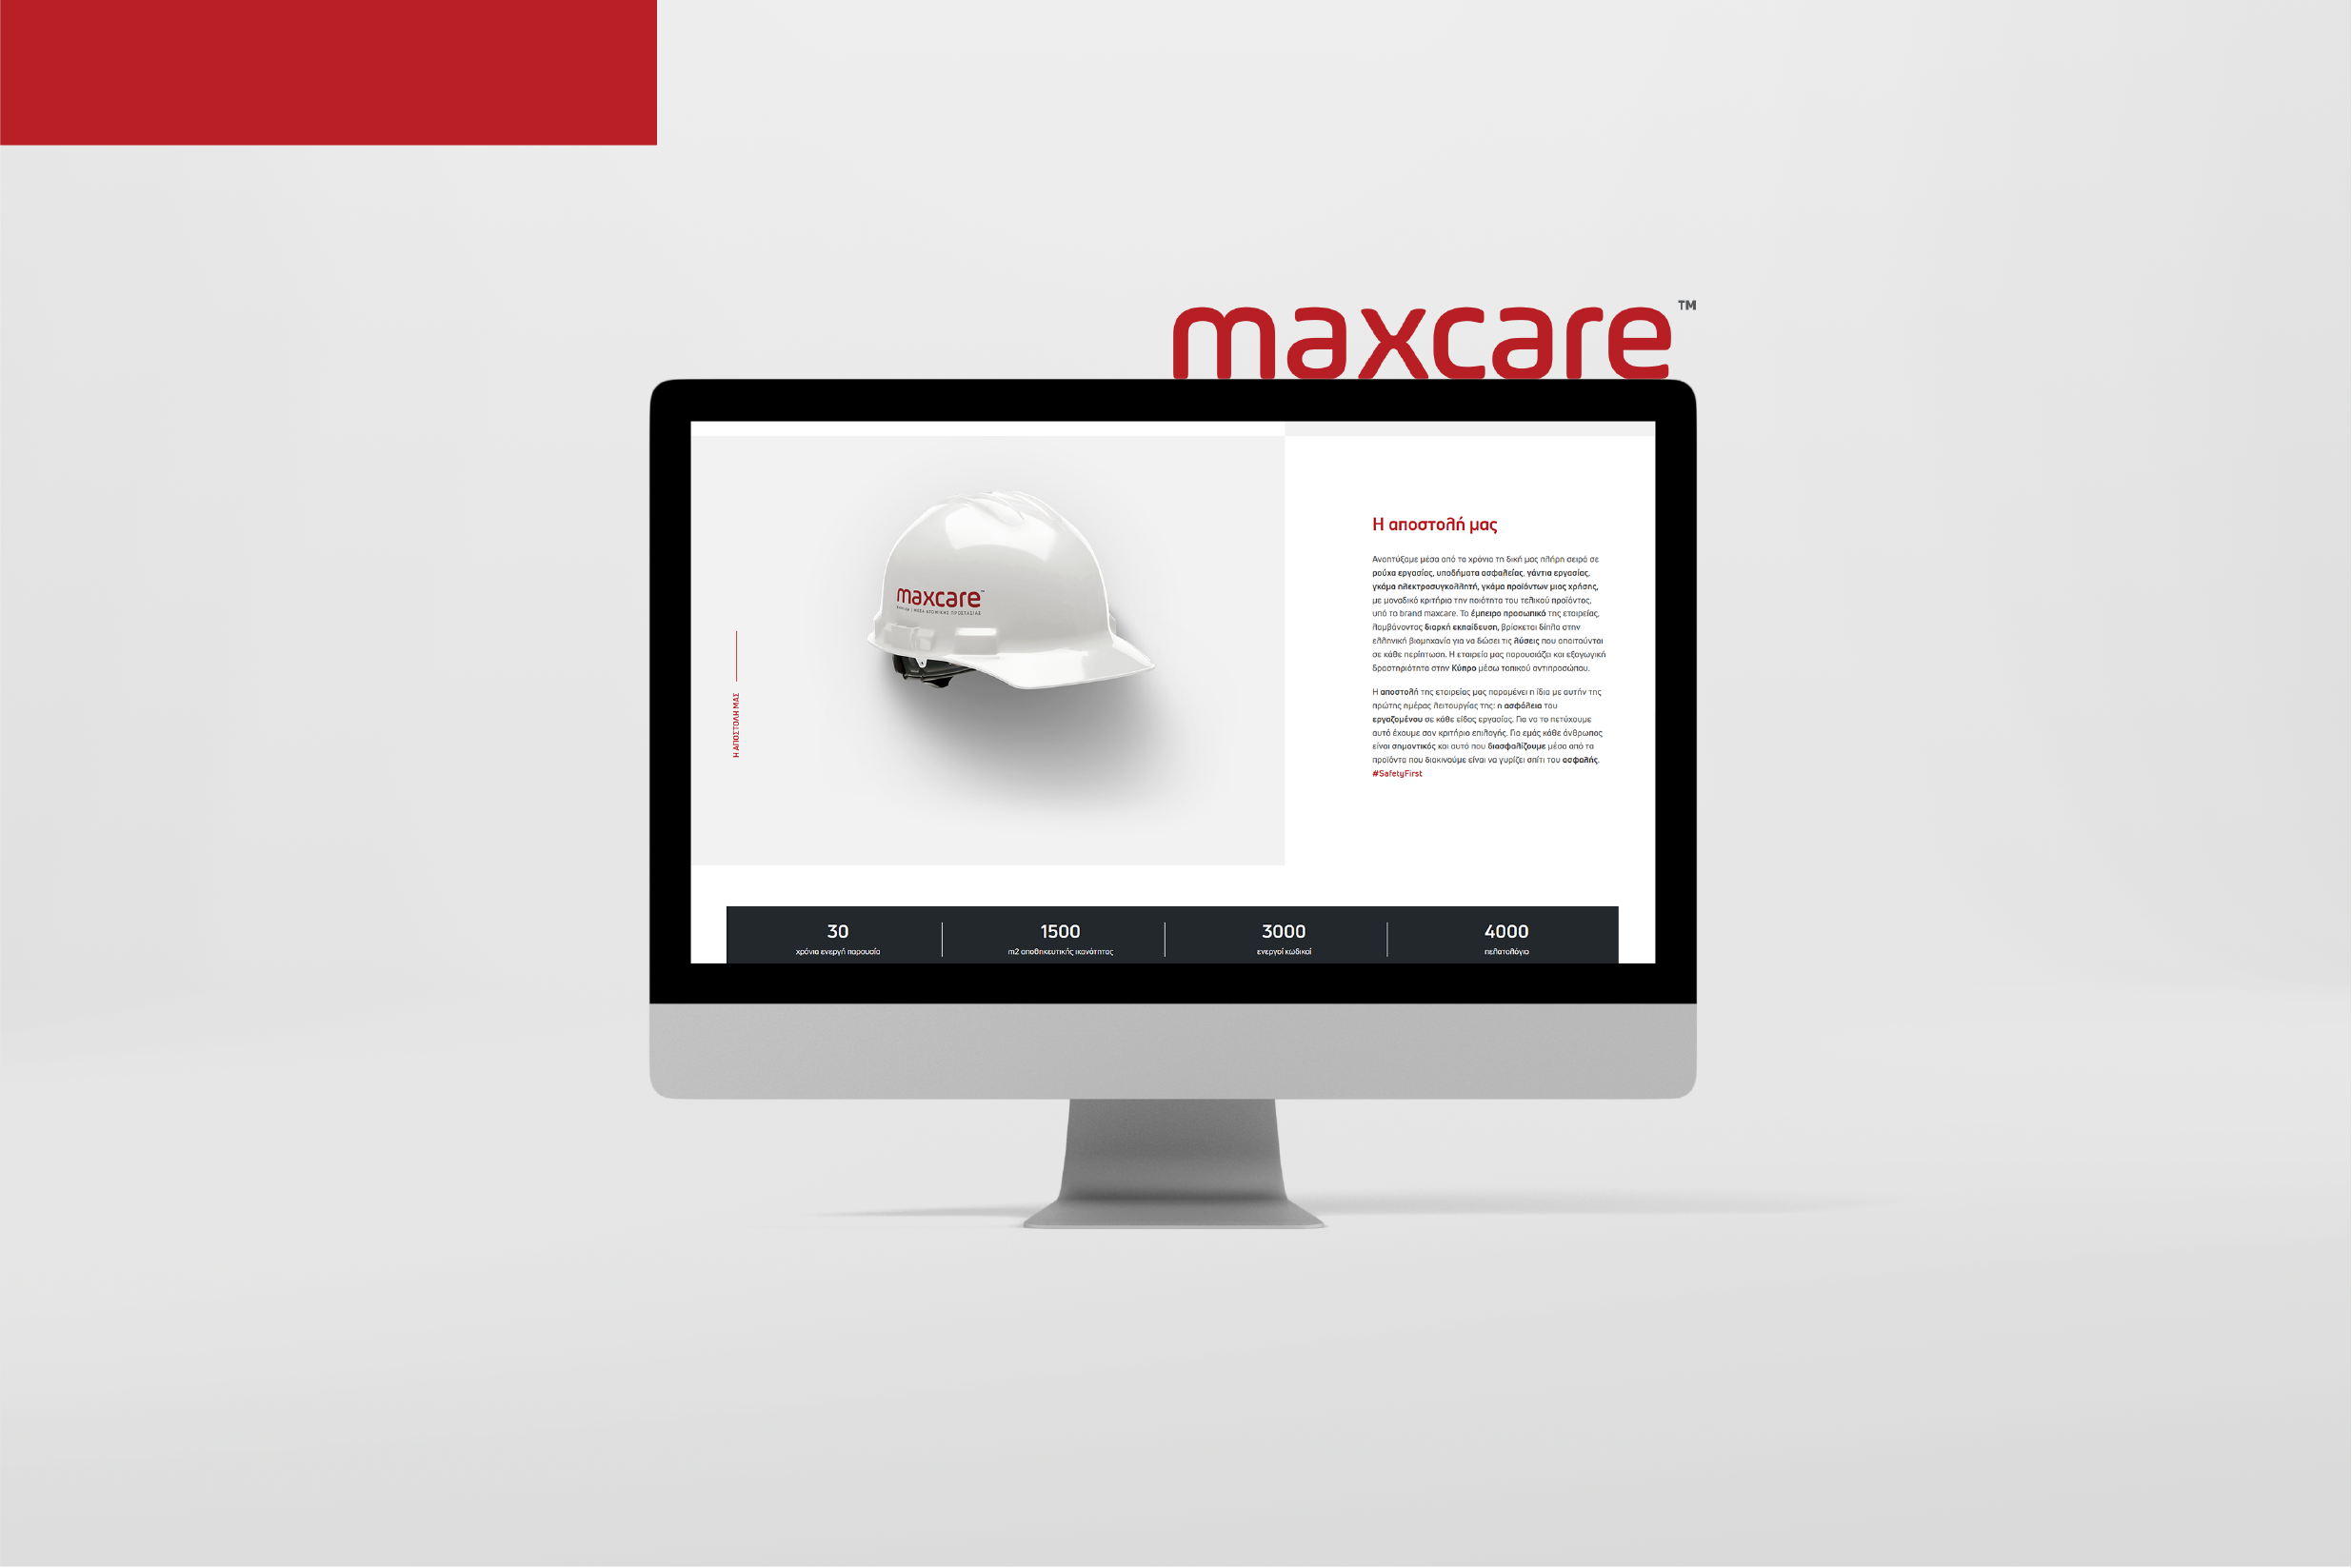 maxcare-presentation-08.png